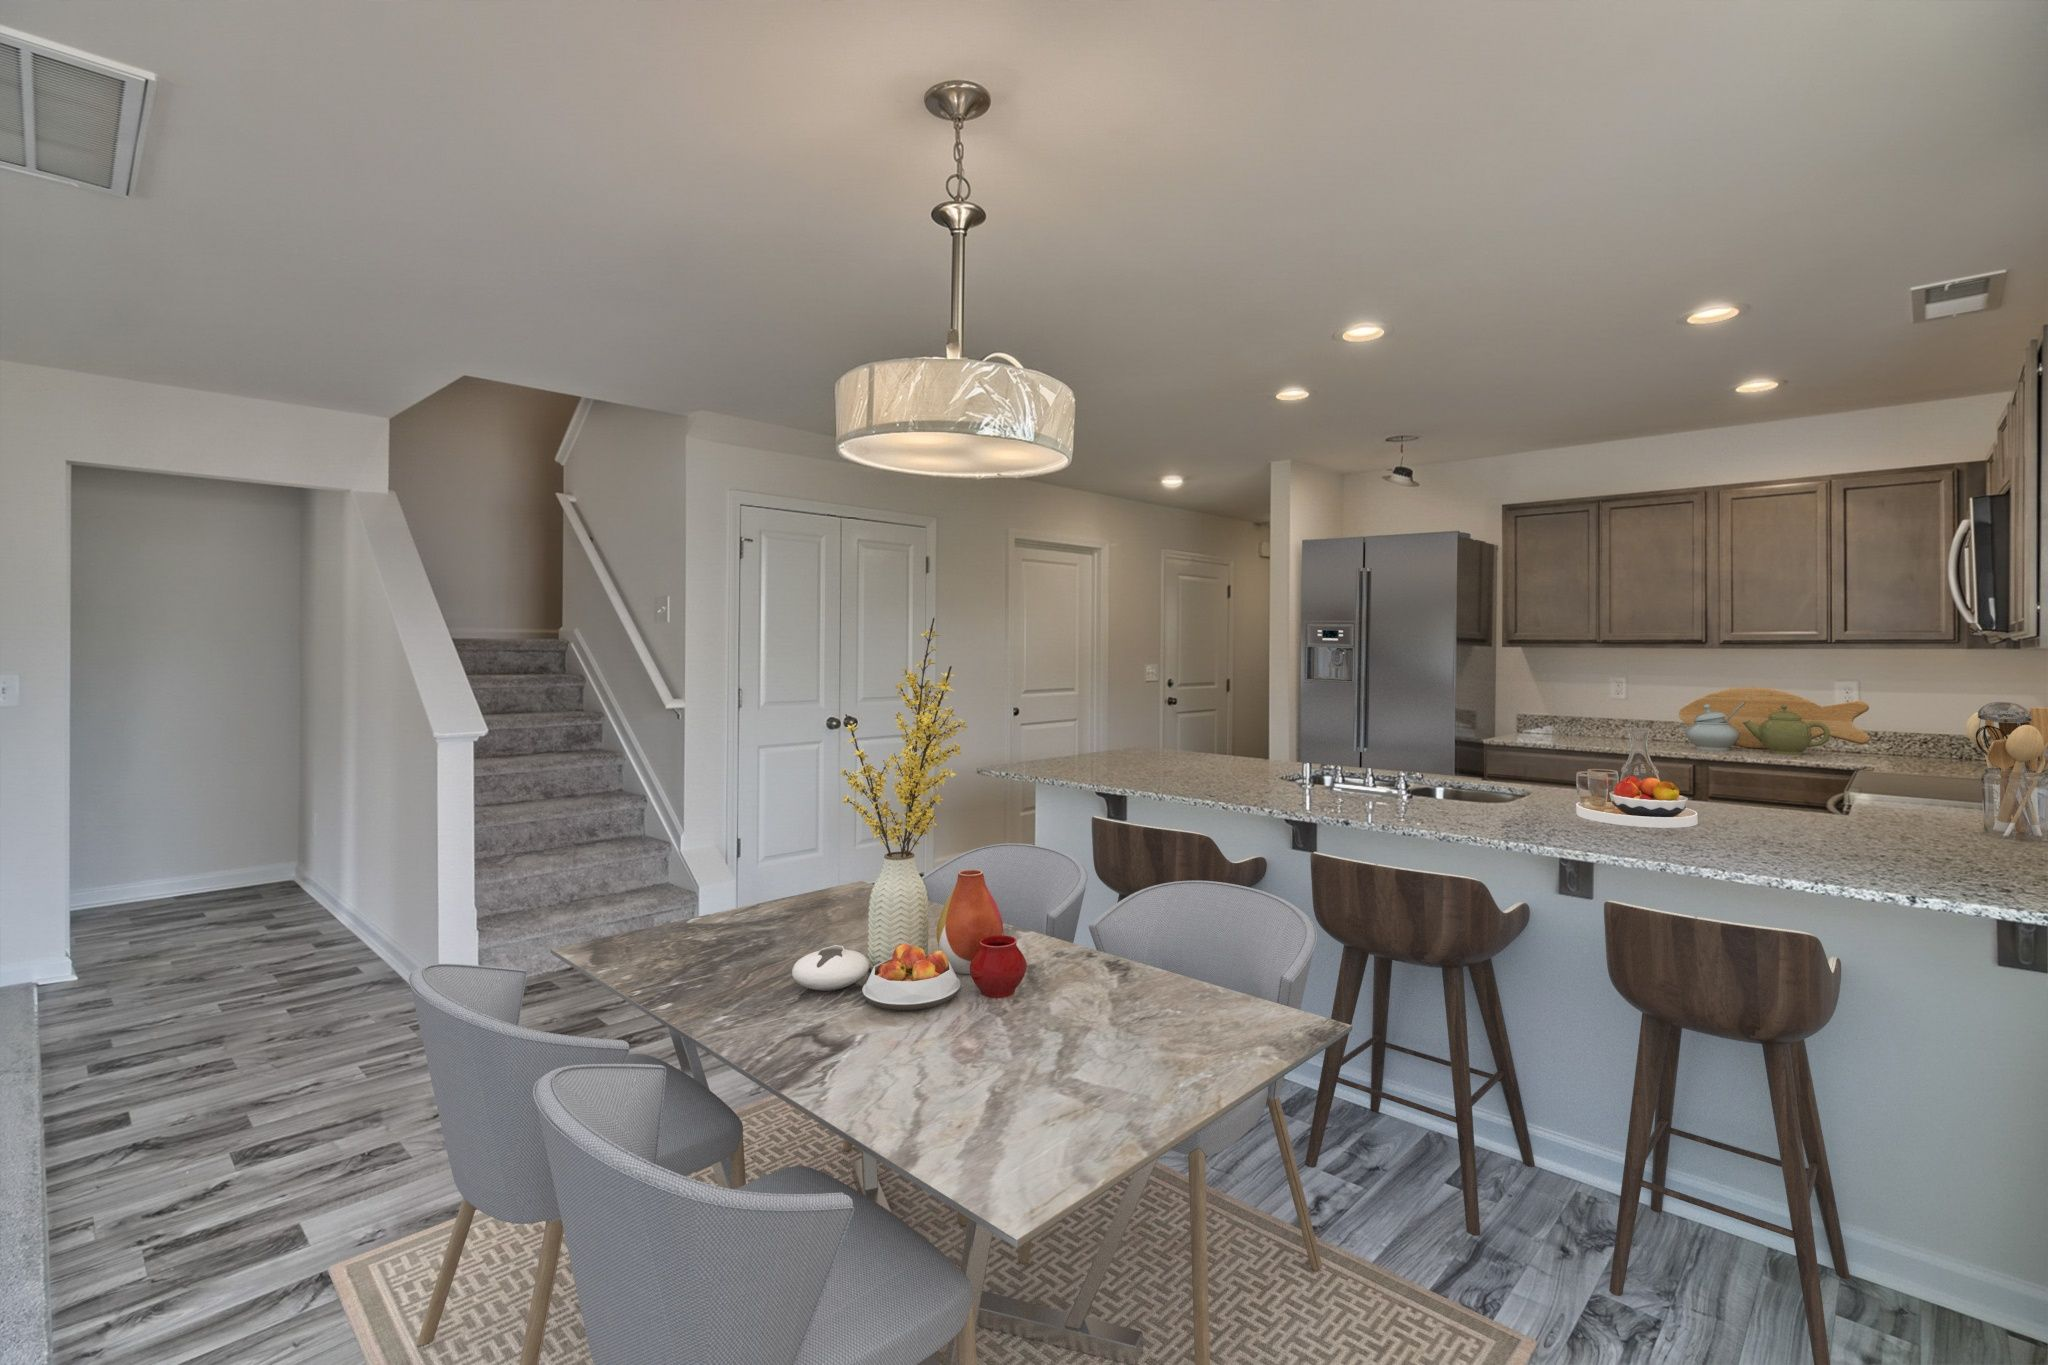 Kitchen featured in the Harley By Stanley Martin Homes in Columbia, SC